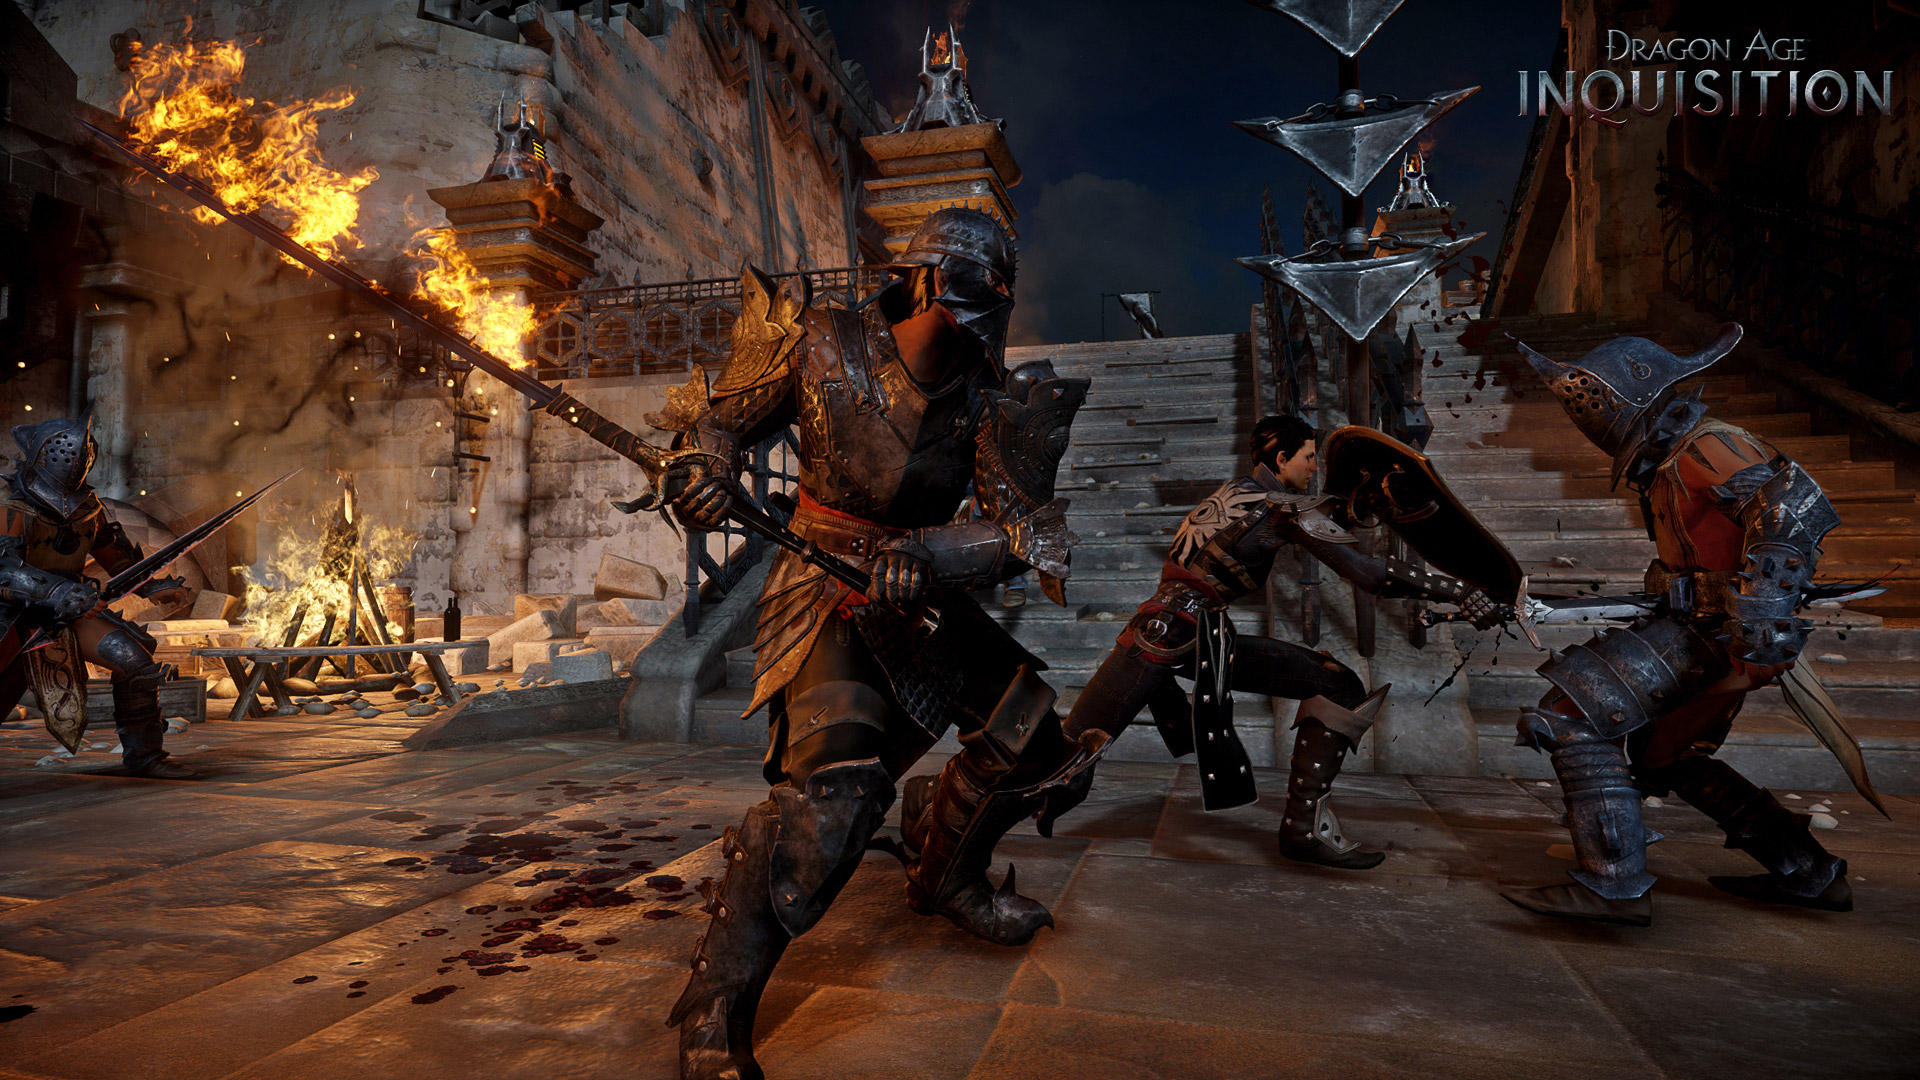 Dragon Age Inquisition Brings Playable Qunari Keeps And Greater Control Polygon We have a new outfit! polygon